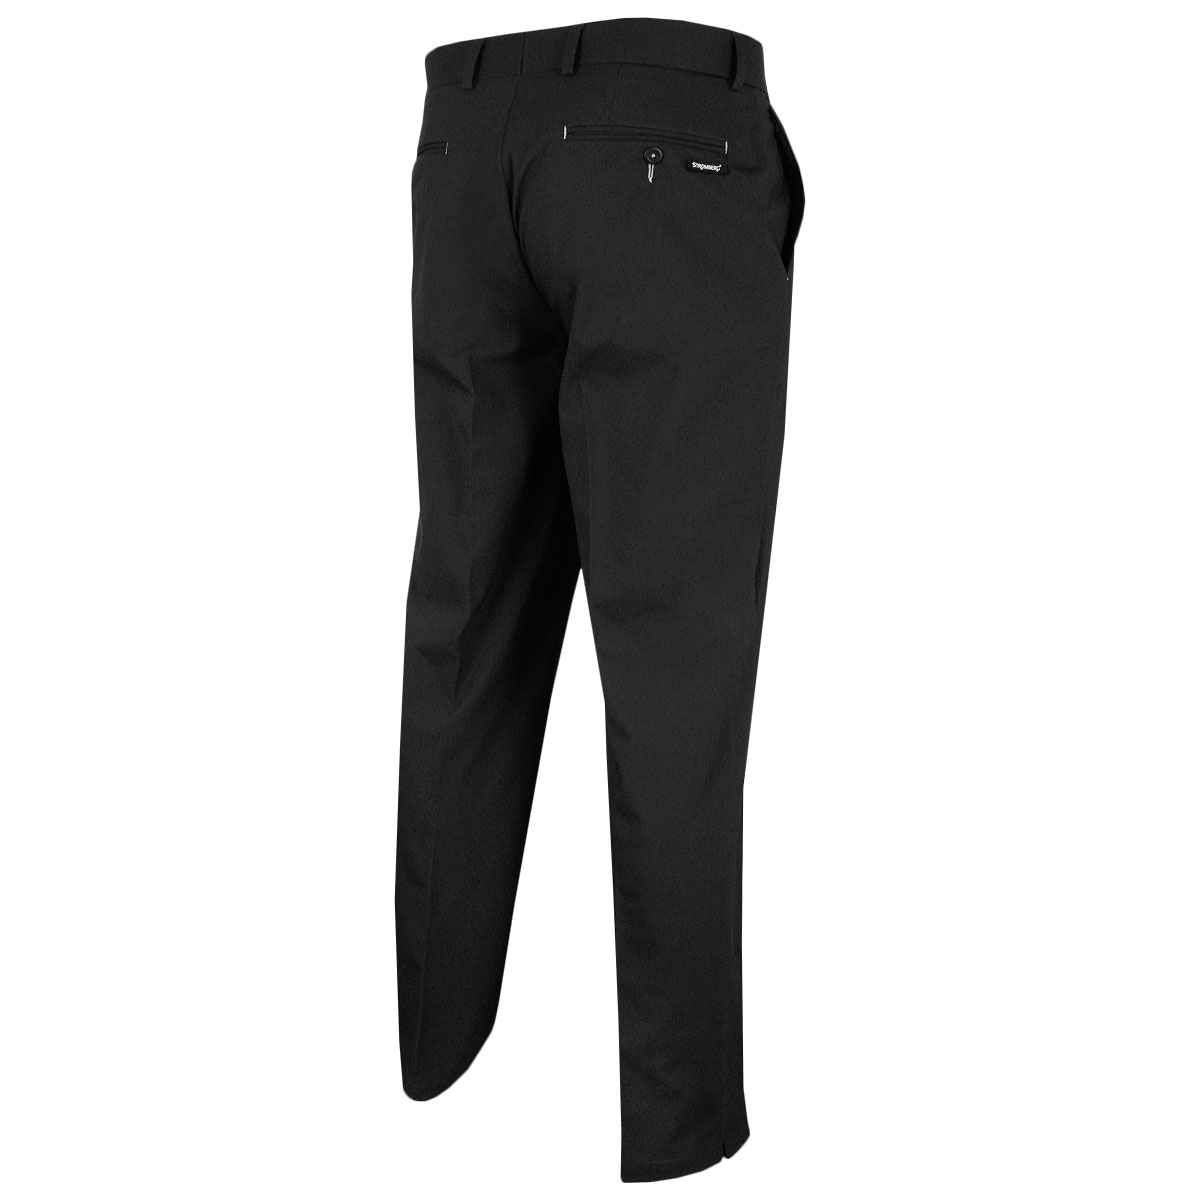 Stromberg-Mens-Wintra-2-0-Winter-Tech-Waterproof-Golf-Trousers-29-OFF-RRP thumbnail 3